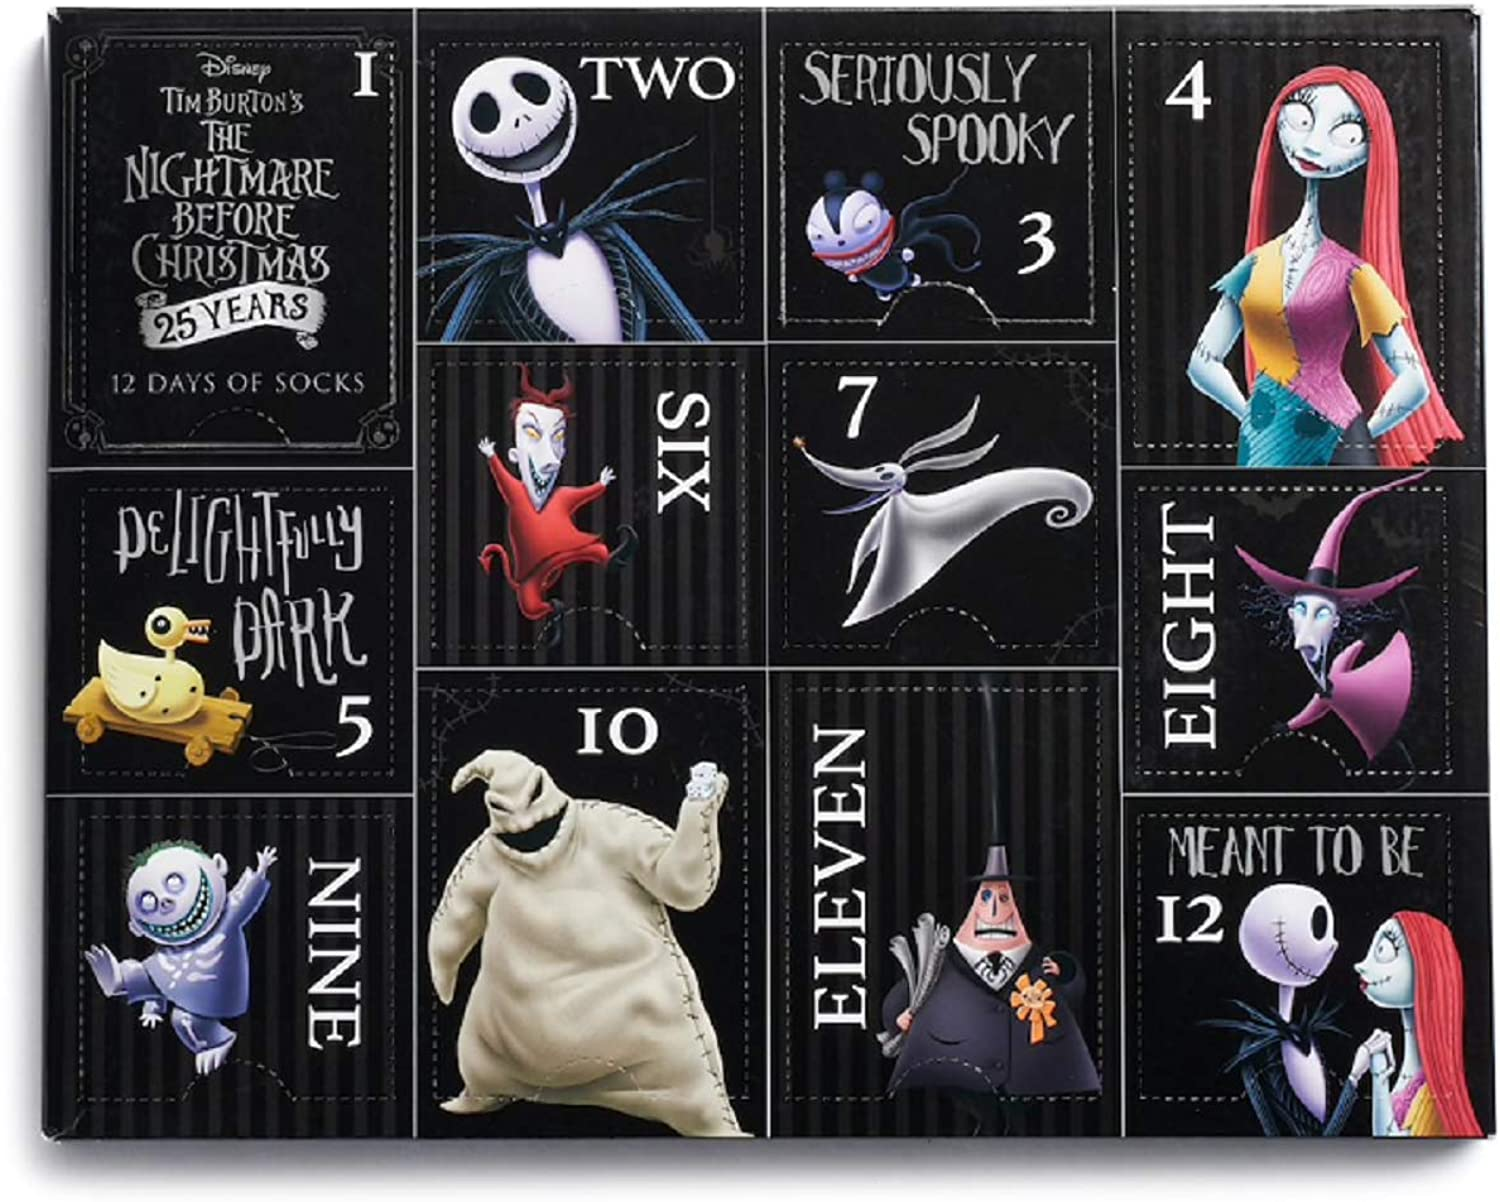 Disney's 25th Anniversary Tim Burton's The Nightmare Before Christmas Ladies 12 Days of Socks shoes Size 410